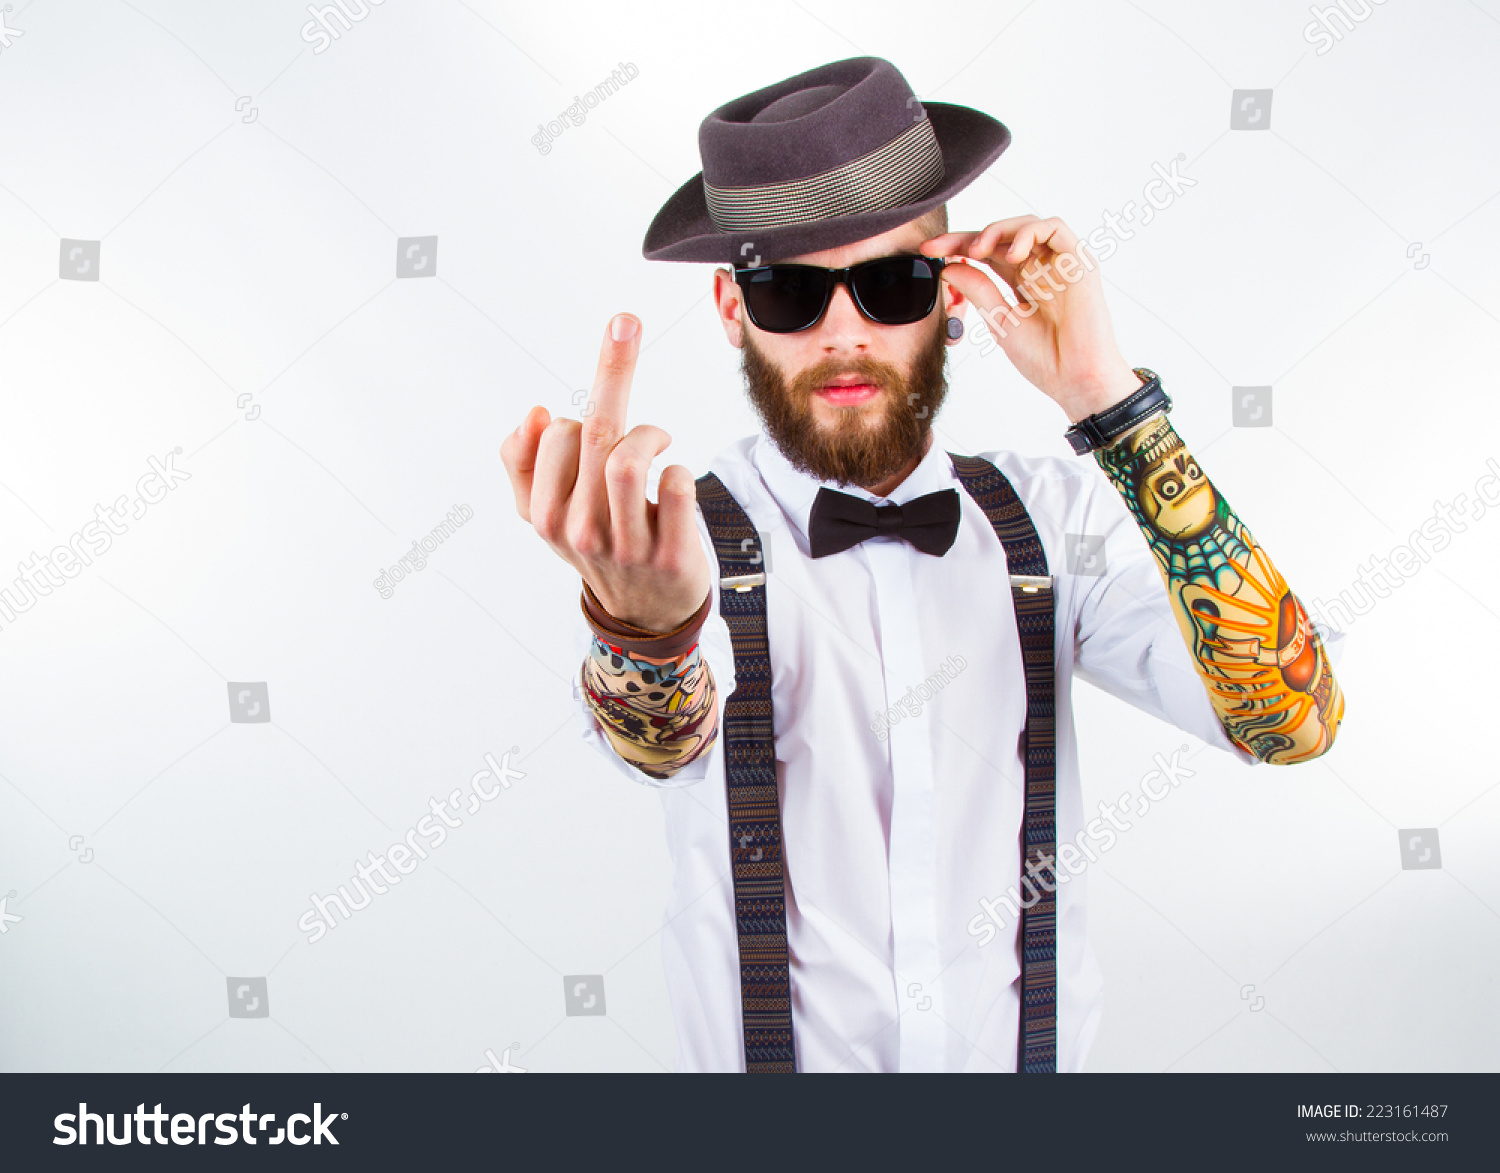 Young Hipster Man Wearing Hat Suspenders Stock Photo ...